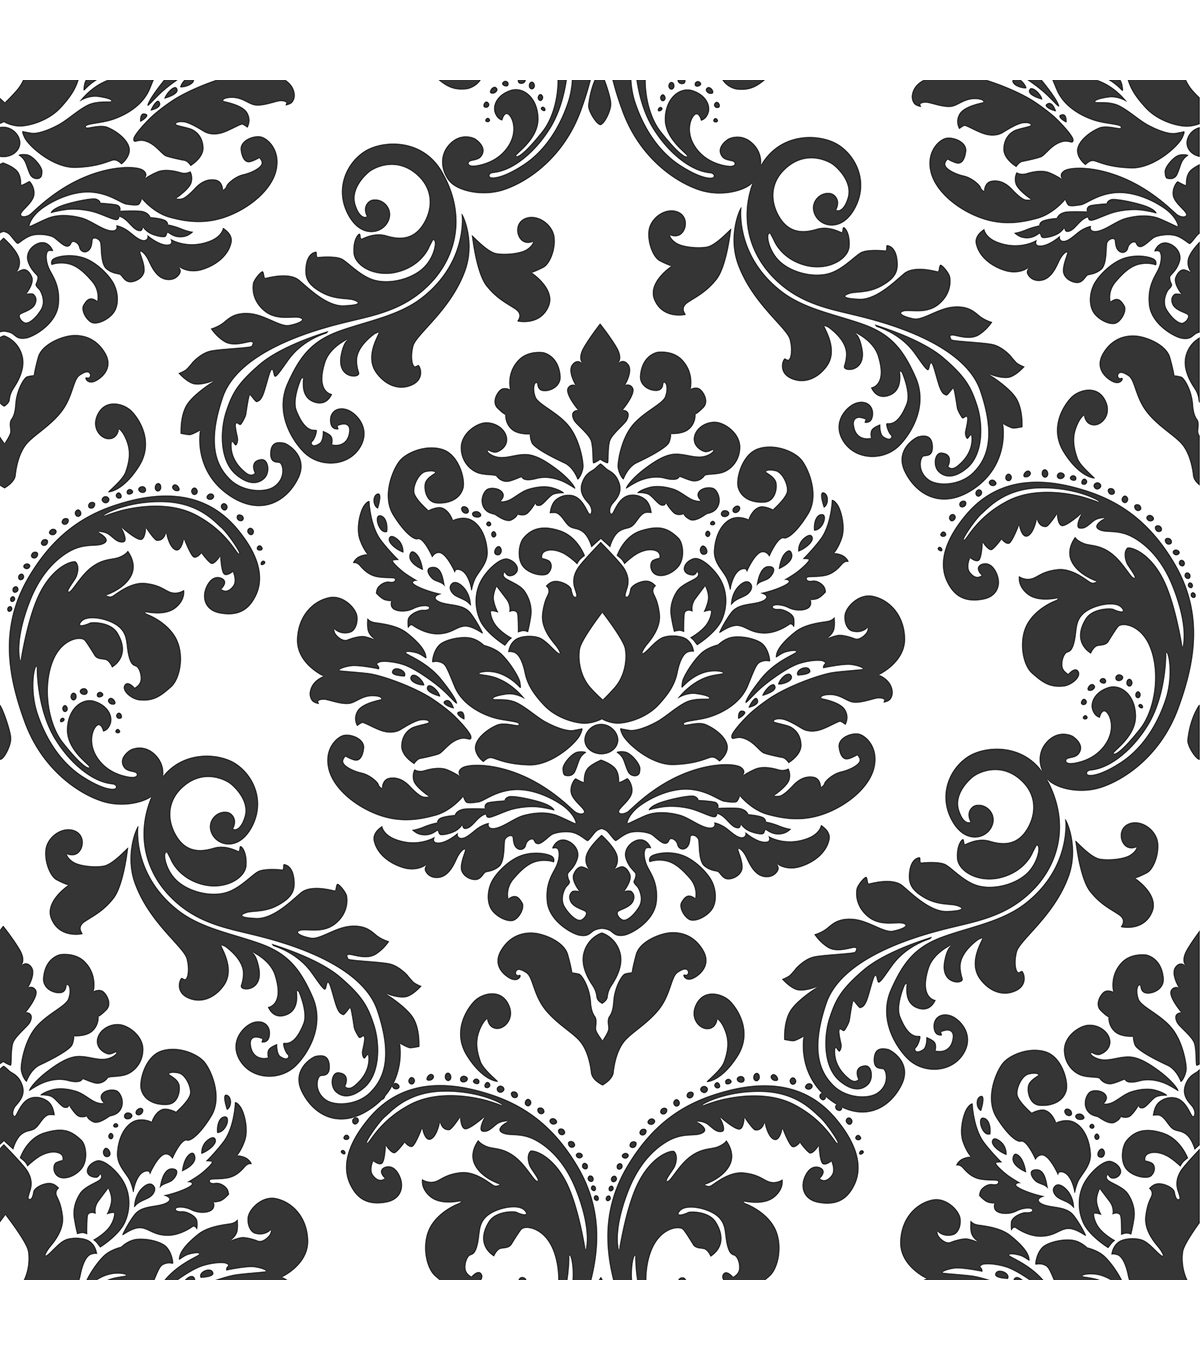 Popular Wallpops® Nuwallpaper Ariel Black And White Damask Peel And Stick Throughout Black And White Damask Wall Art (View 9 of 15)